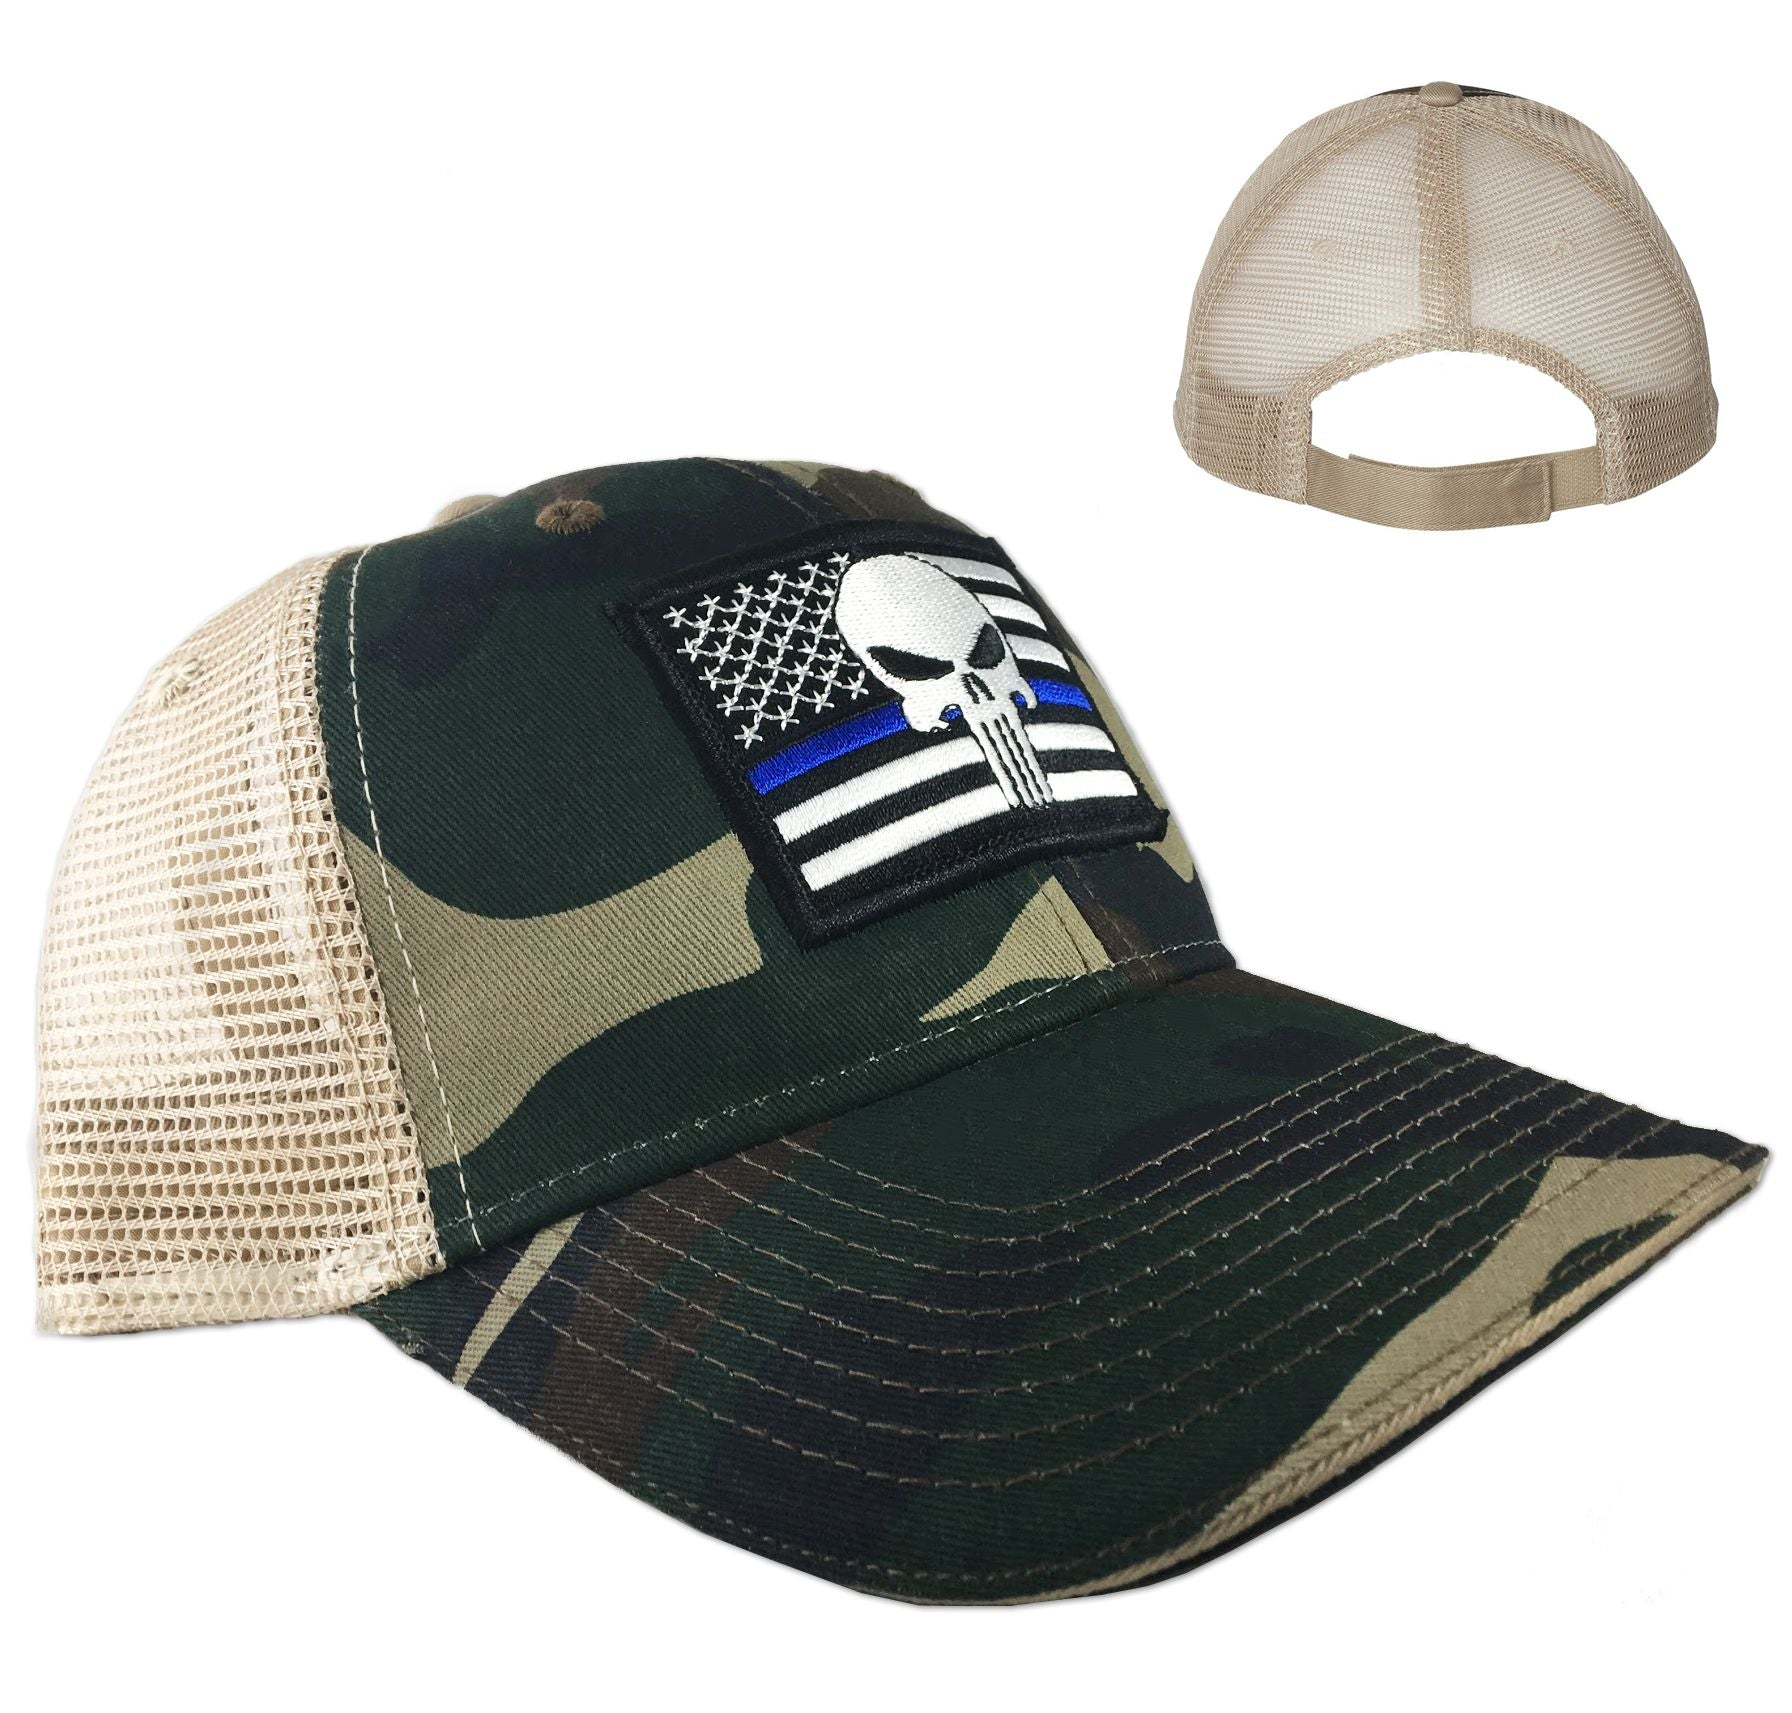 Camo Trucker s Hat - Skull Thin Blue Line 500789e66293